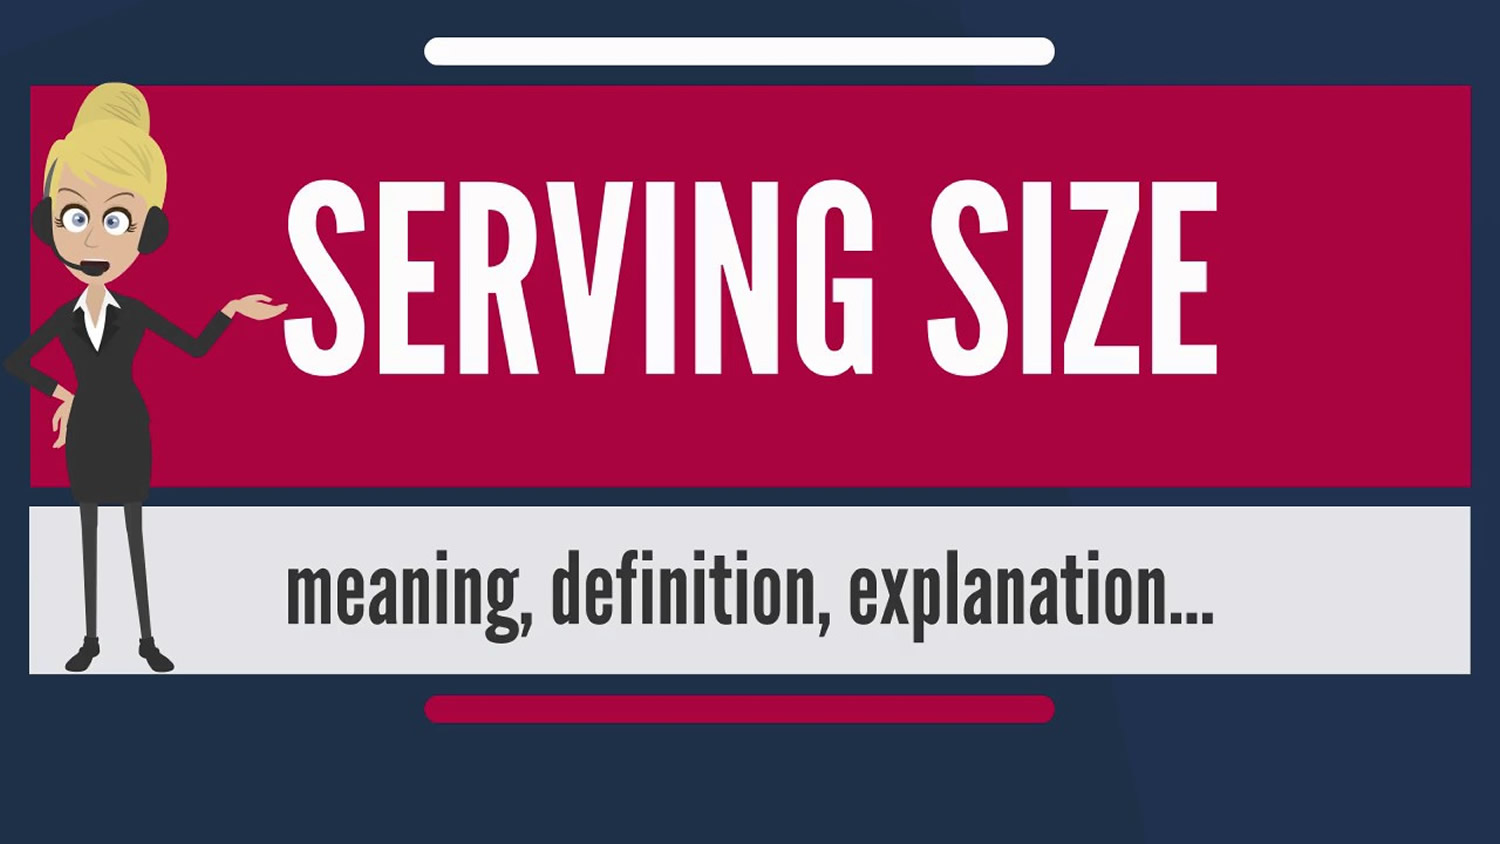 what is a serving size